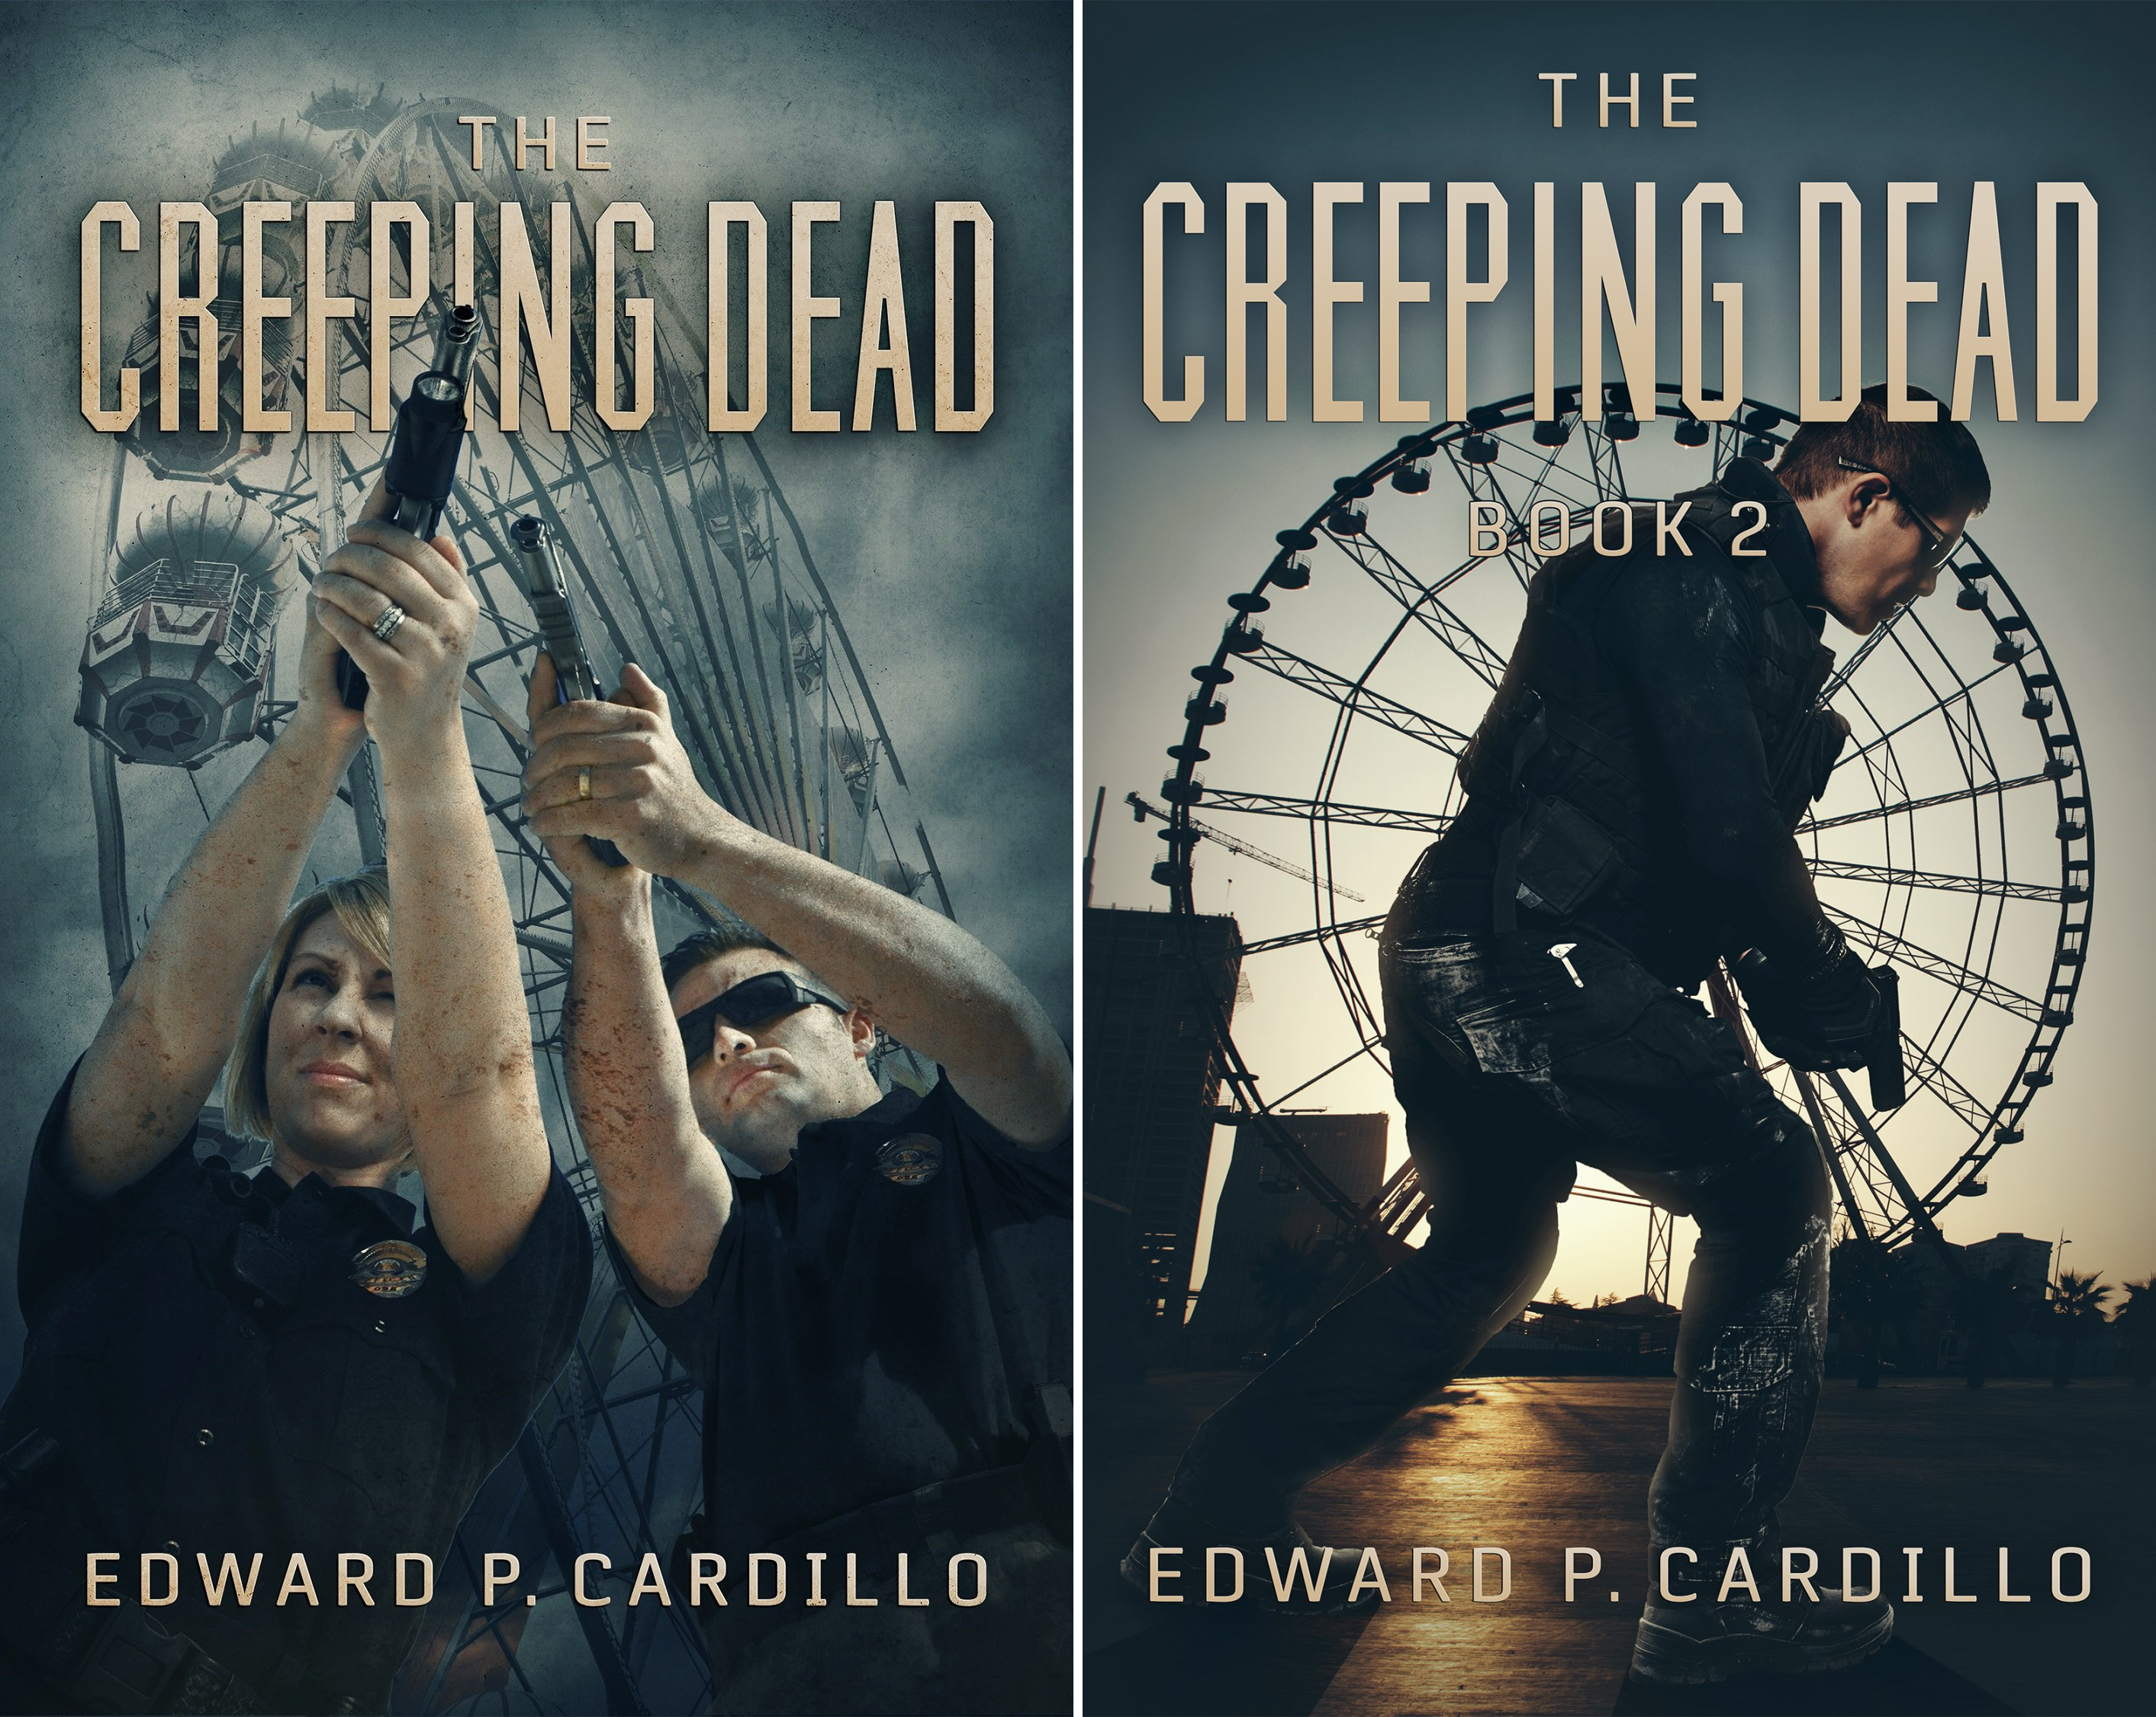 The Creeping Dead (2 Book Series)